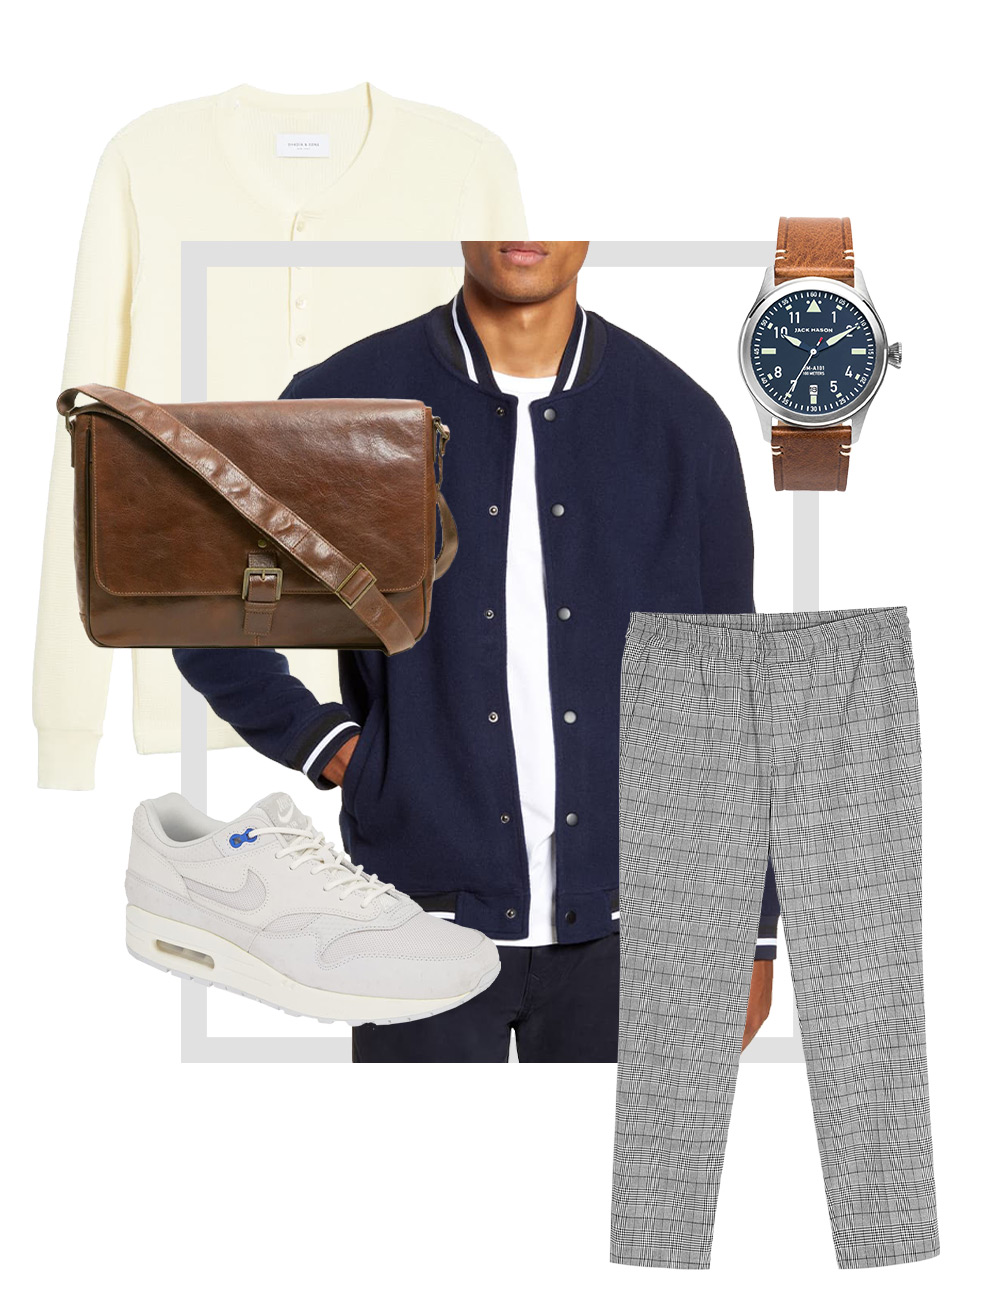 Men's gray pants outfit collage